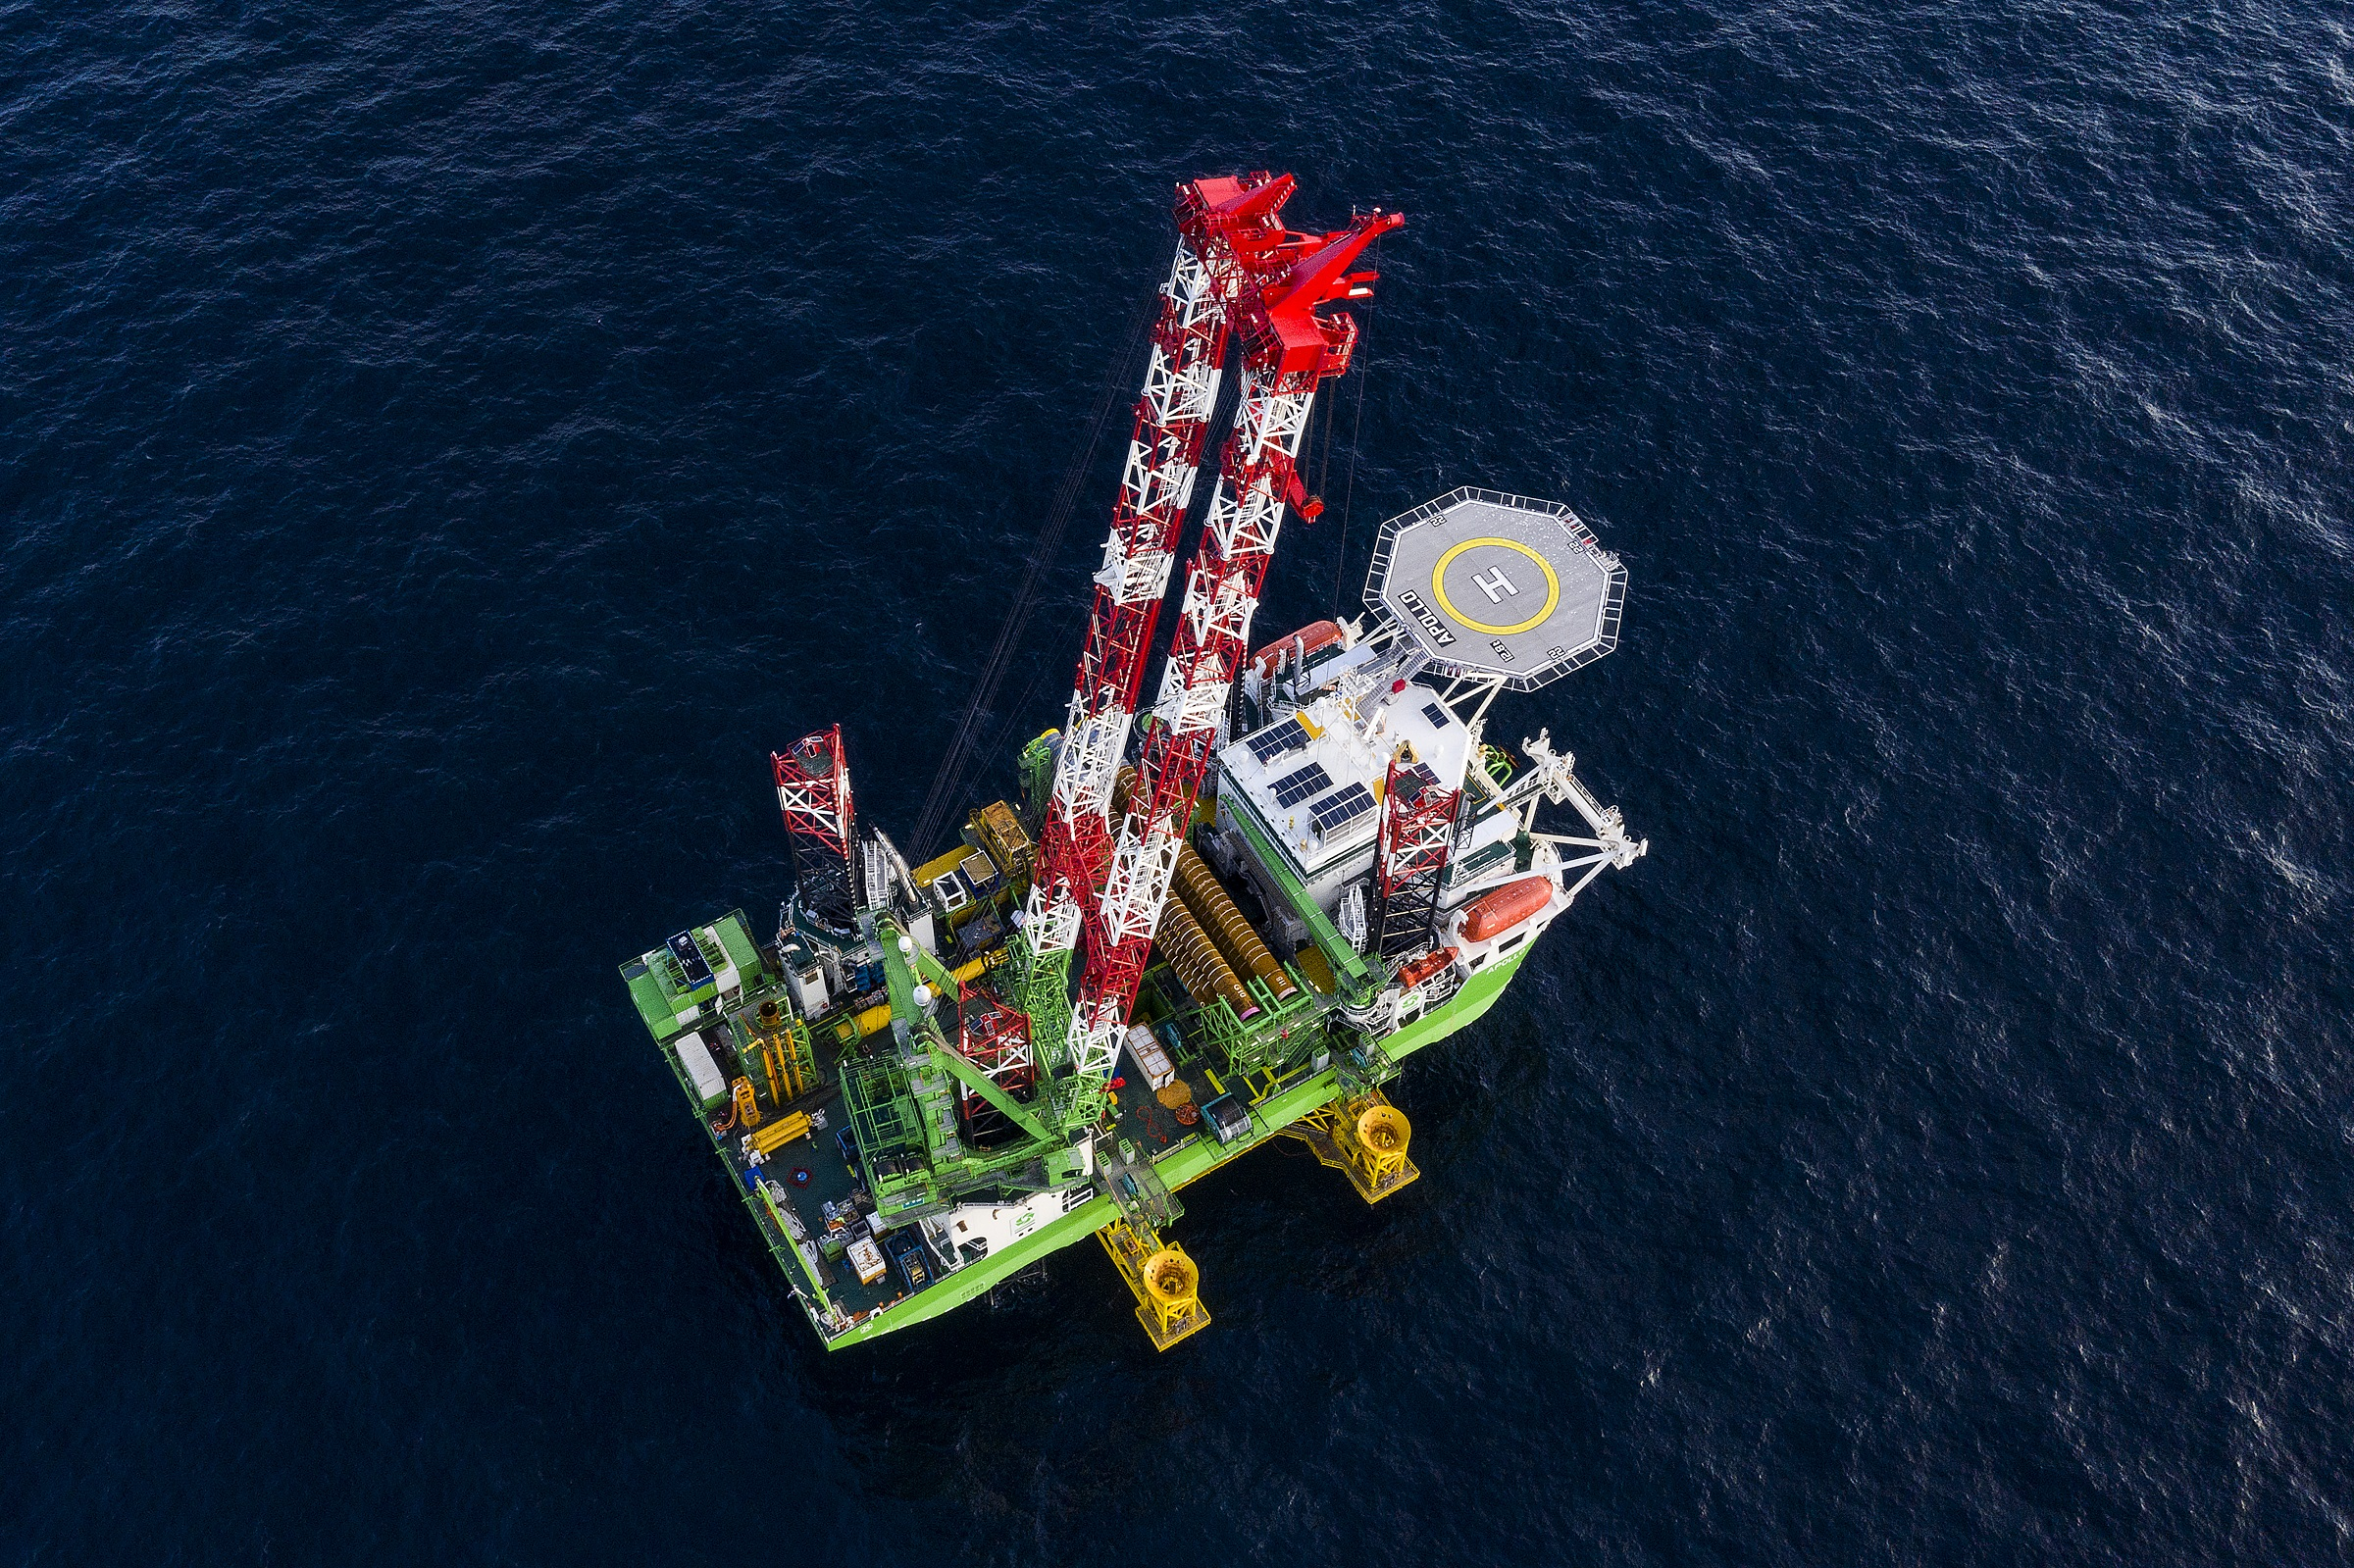 Foundation piling operations completed at Moray East Offshore Wind Farm